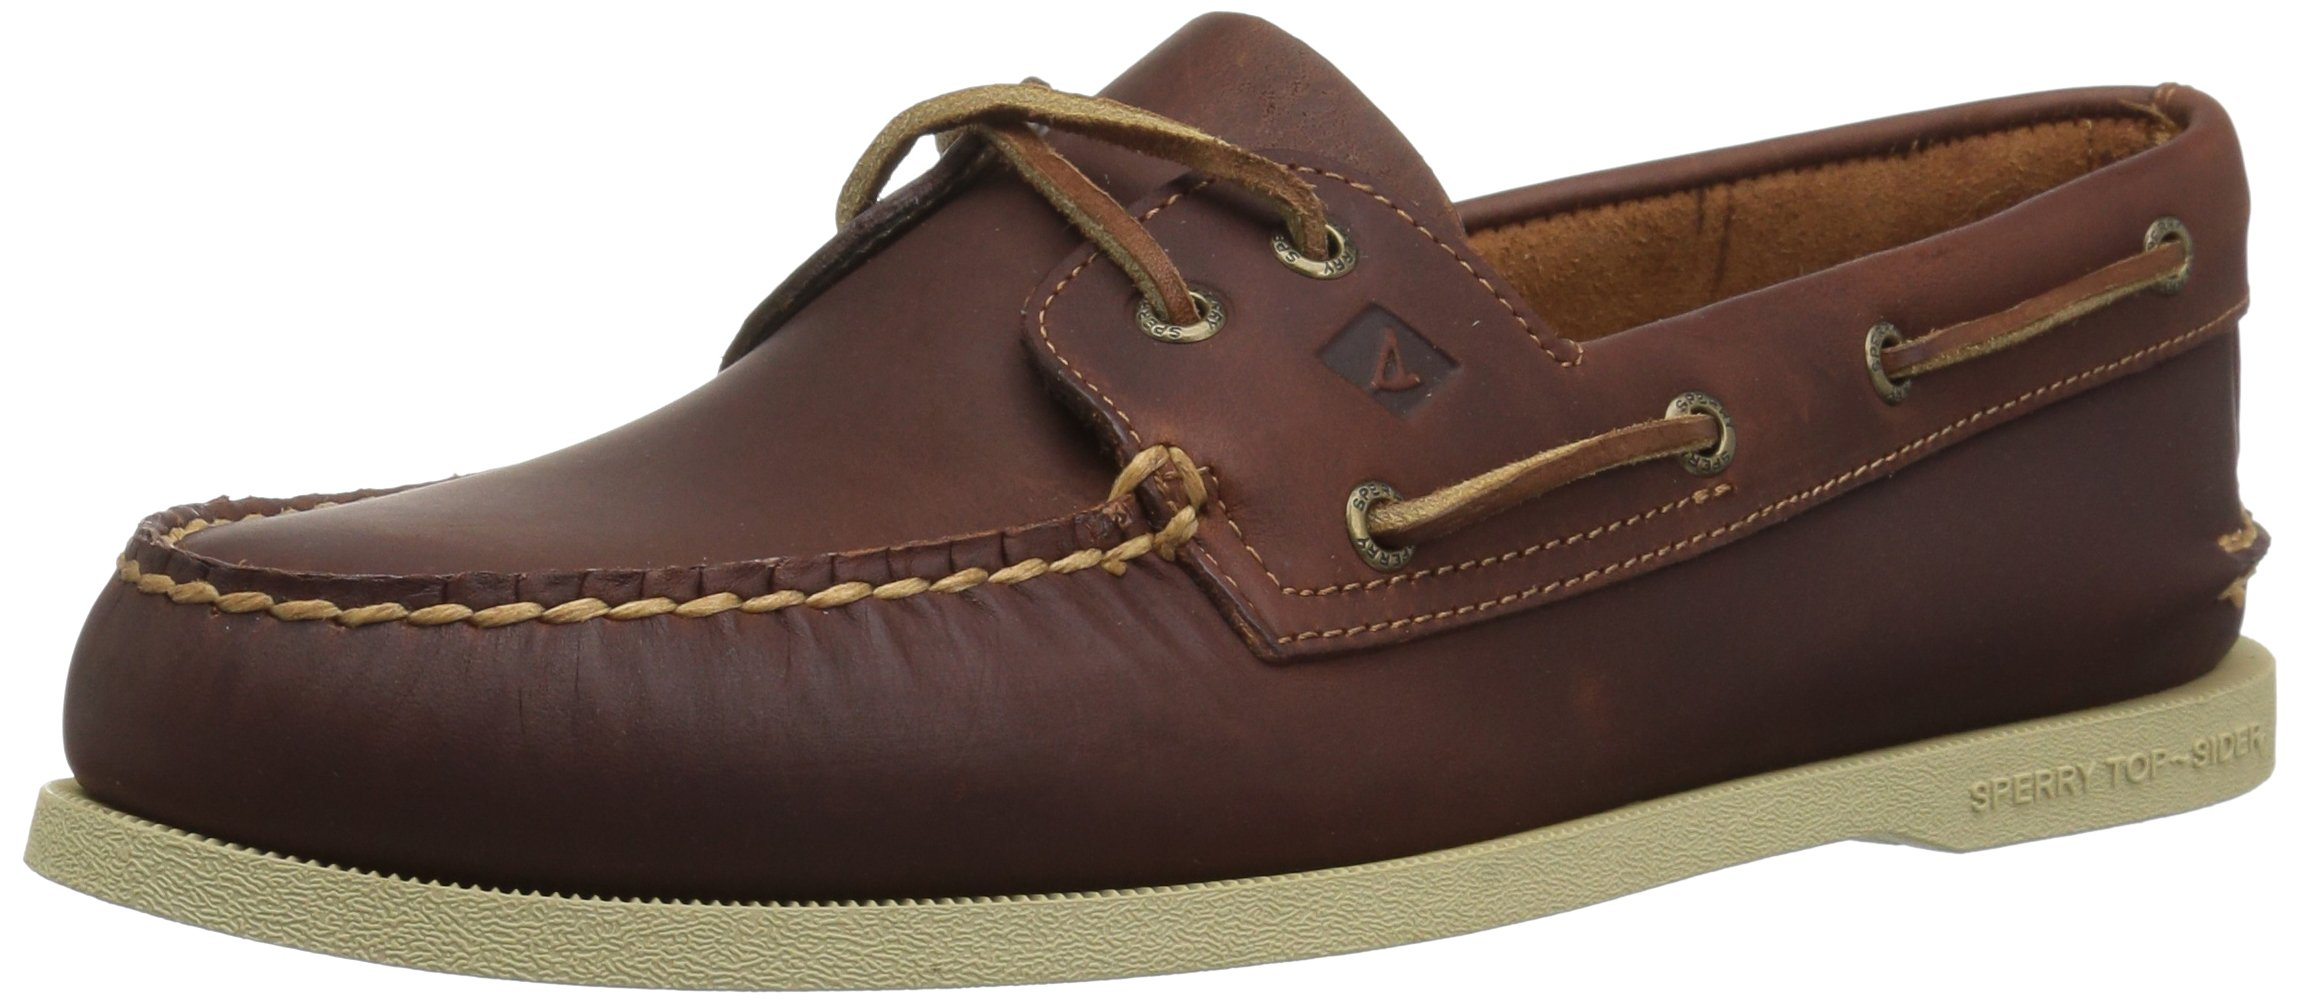 Sperry Top-Sider Men's A/O 2-Eye Pullup Boat Shoe, tan, 11 M US